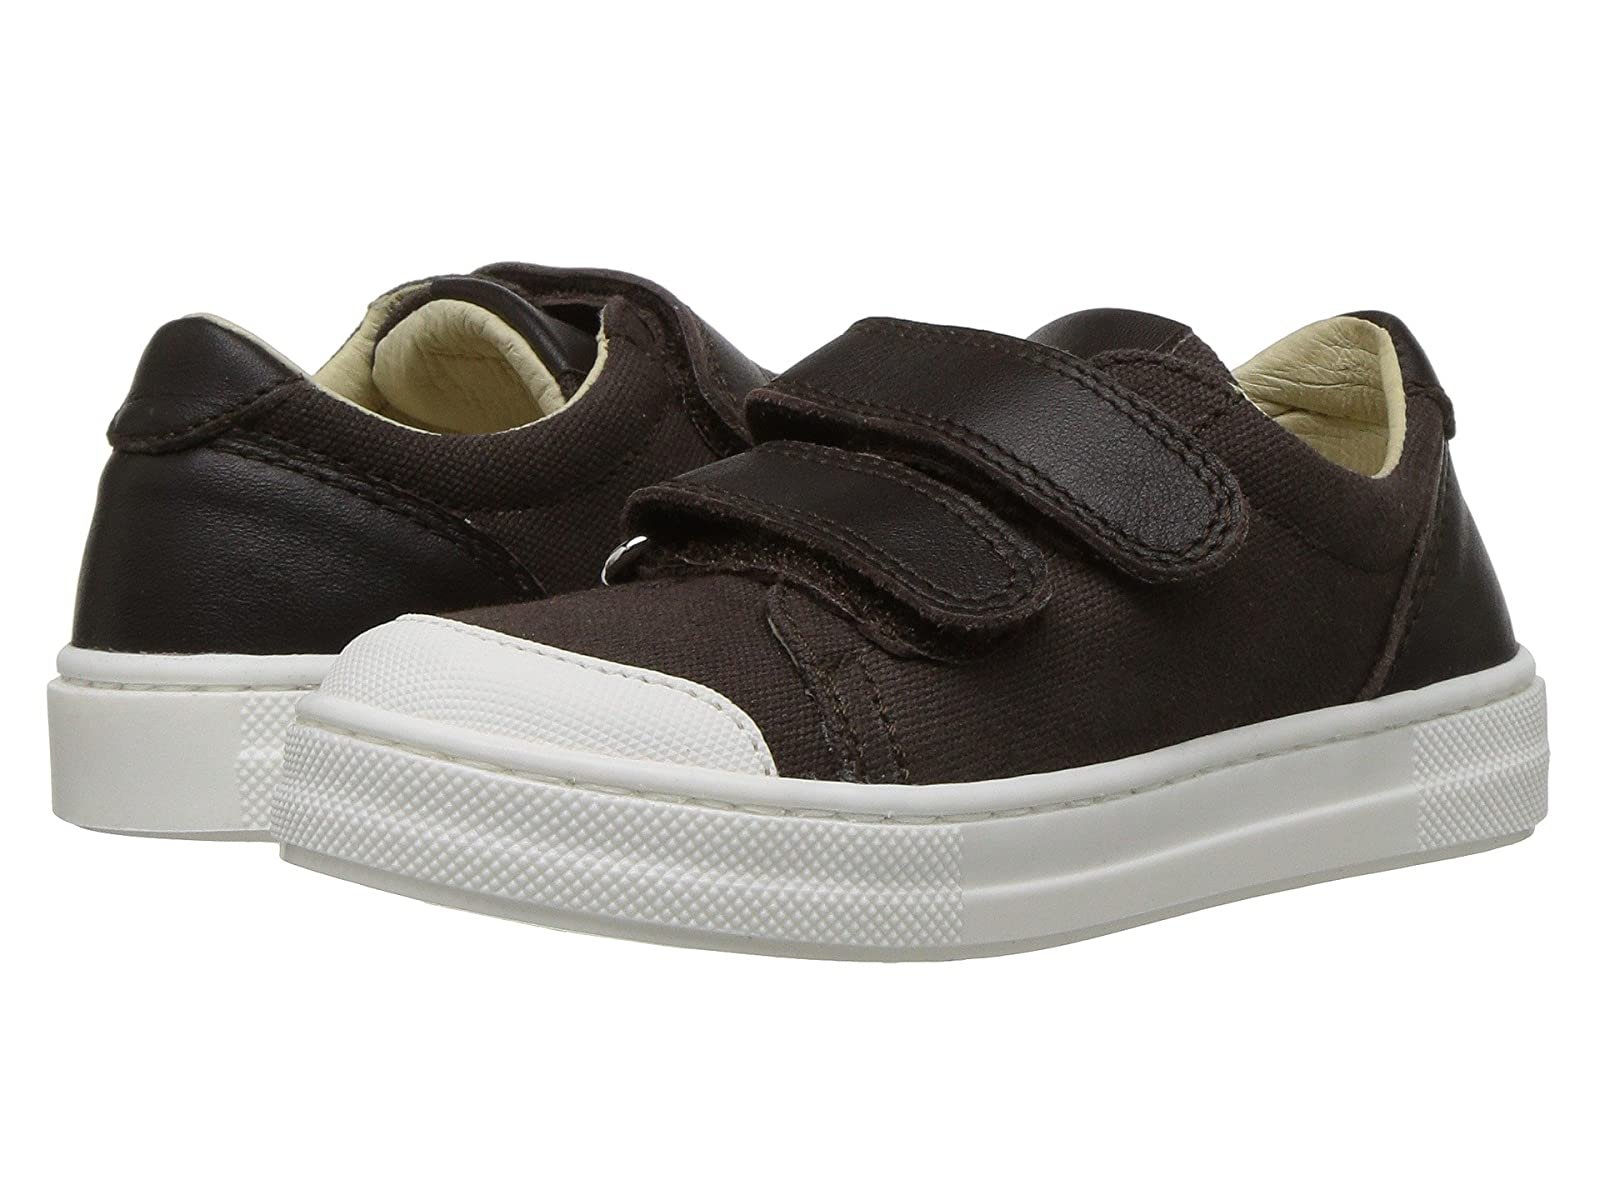 Naturino 4586 SS18 (Toddler/Little Kid/Big Kid)Atmospheric grades have affordable shoes